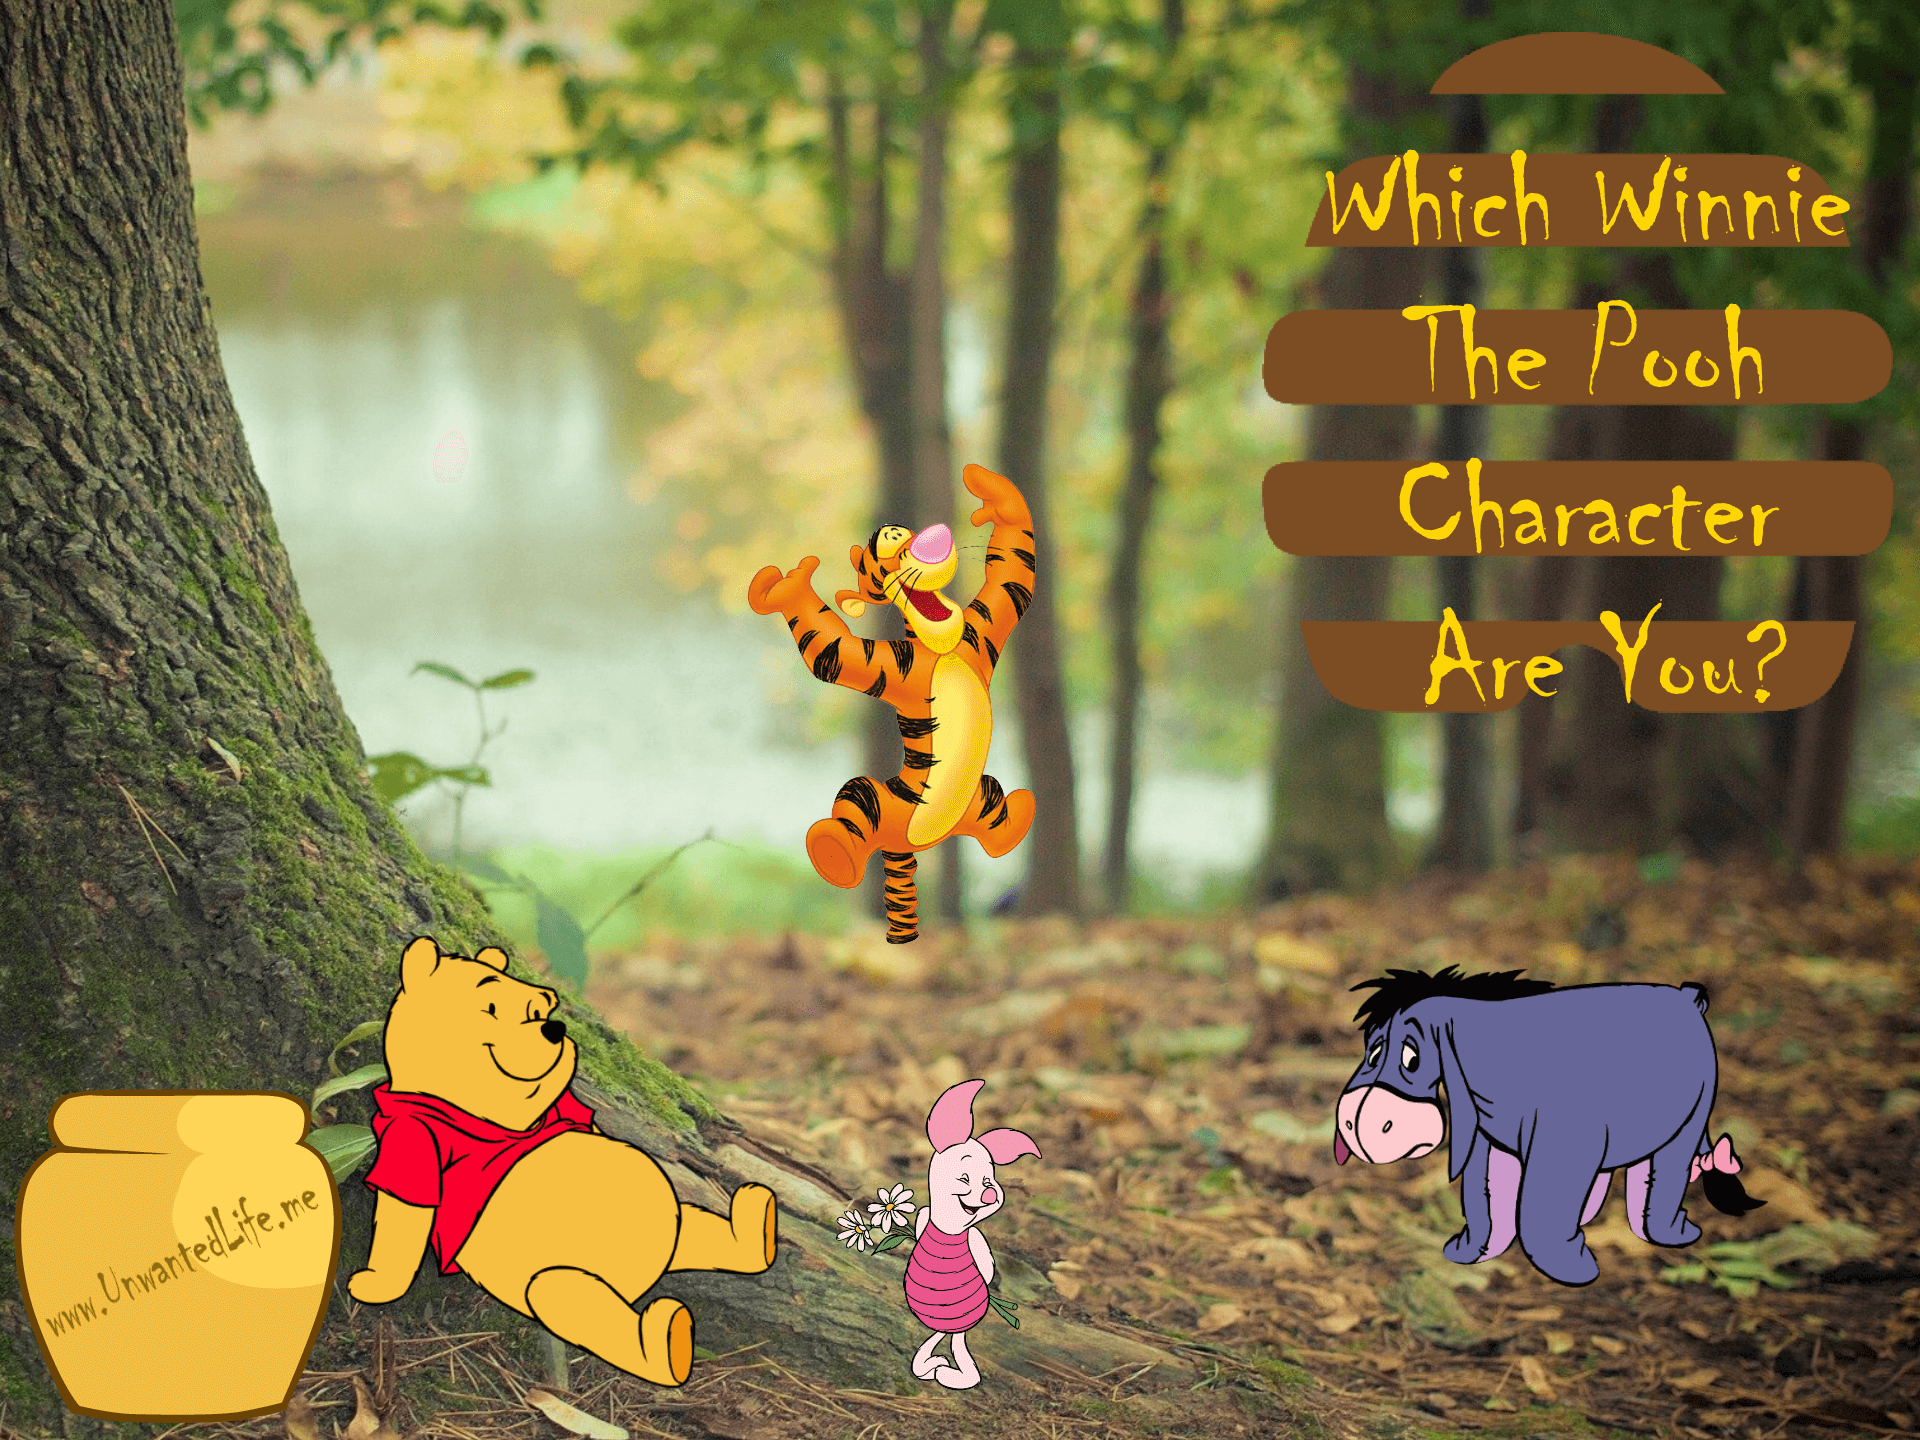 A picture of four Winnie the Pooh characters sitting handing around in the woods to represent the topic of the article - Which Winnie The Pooh Character Are You?